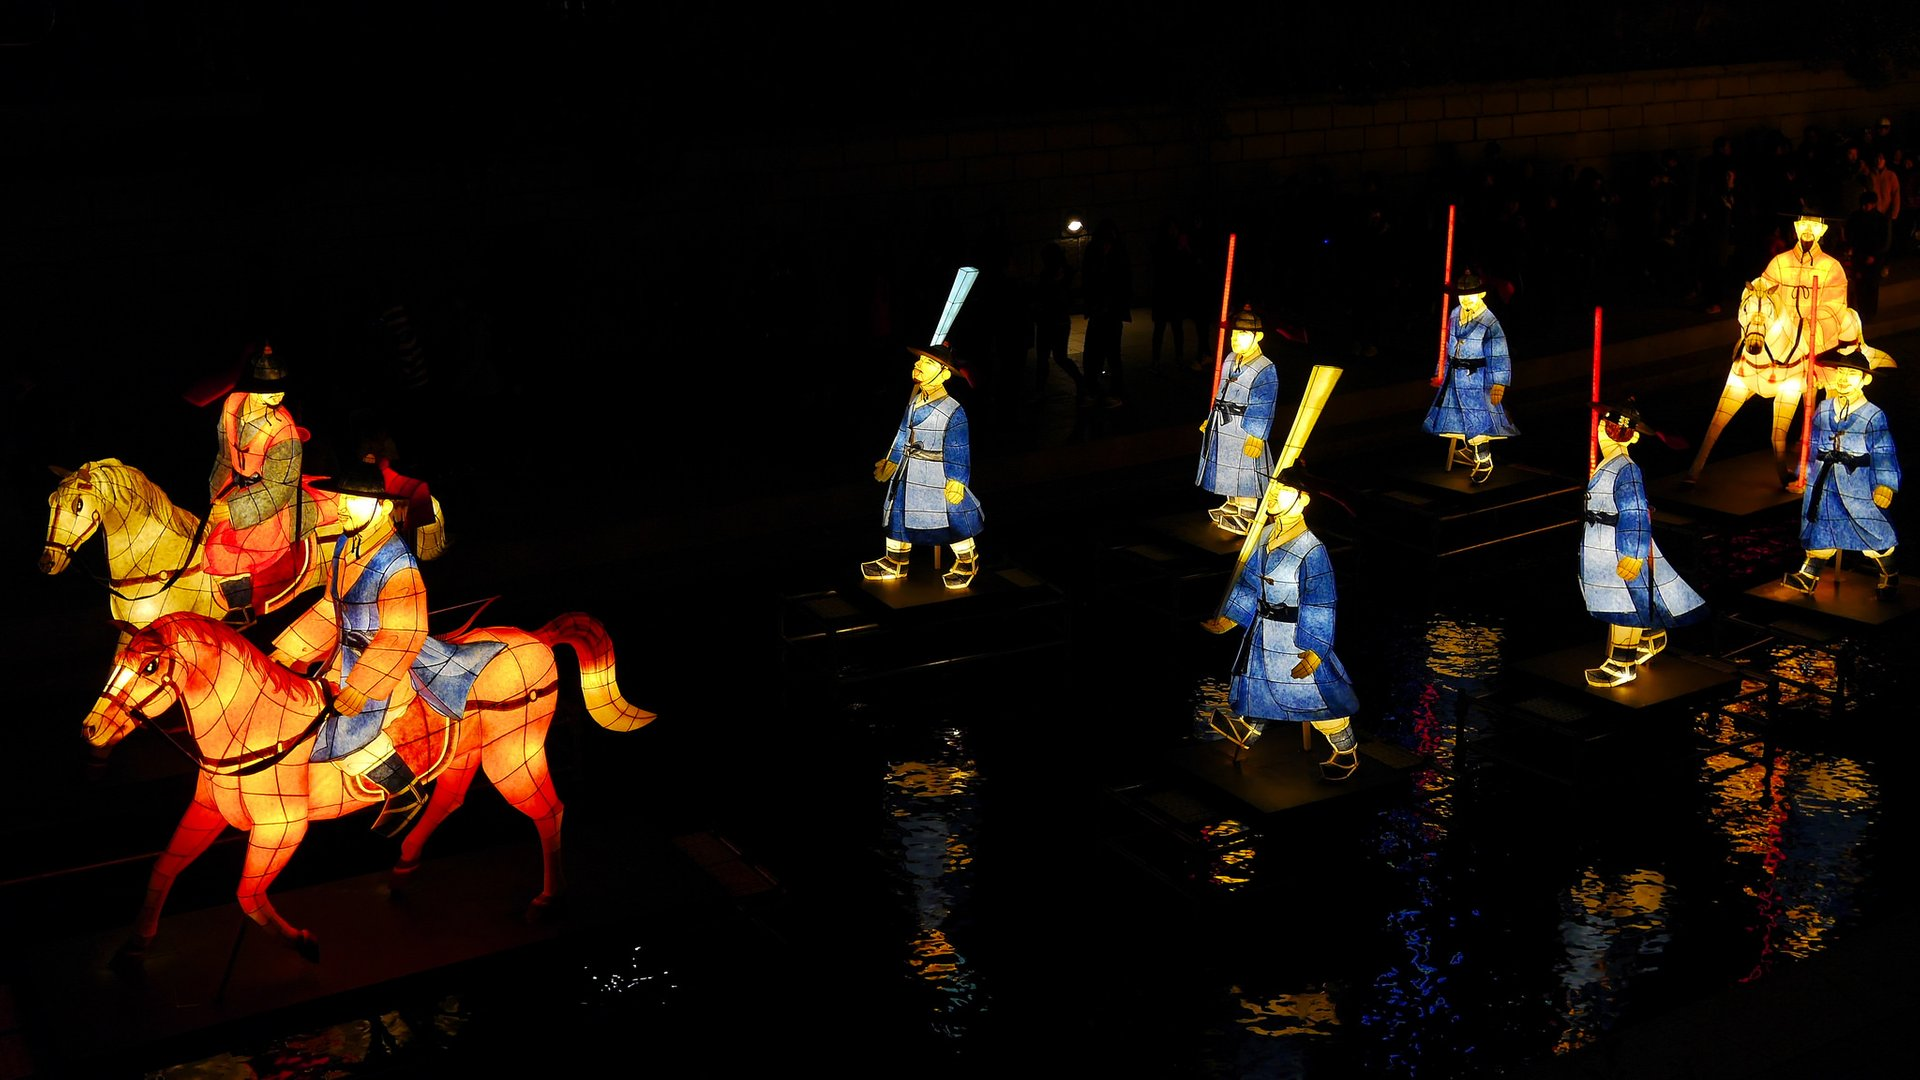 Best time to see Seoul Lantern Festival in Seoul 2020